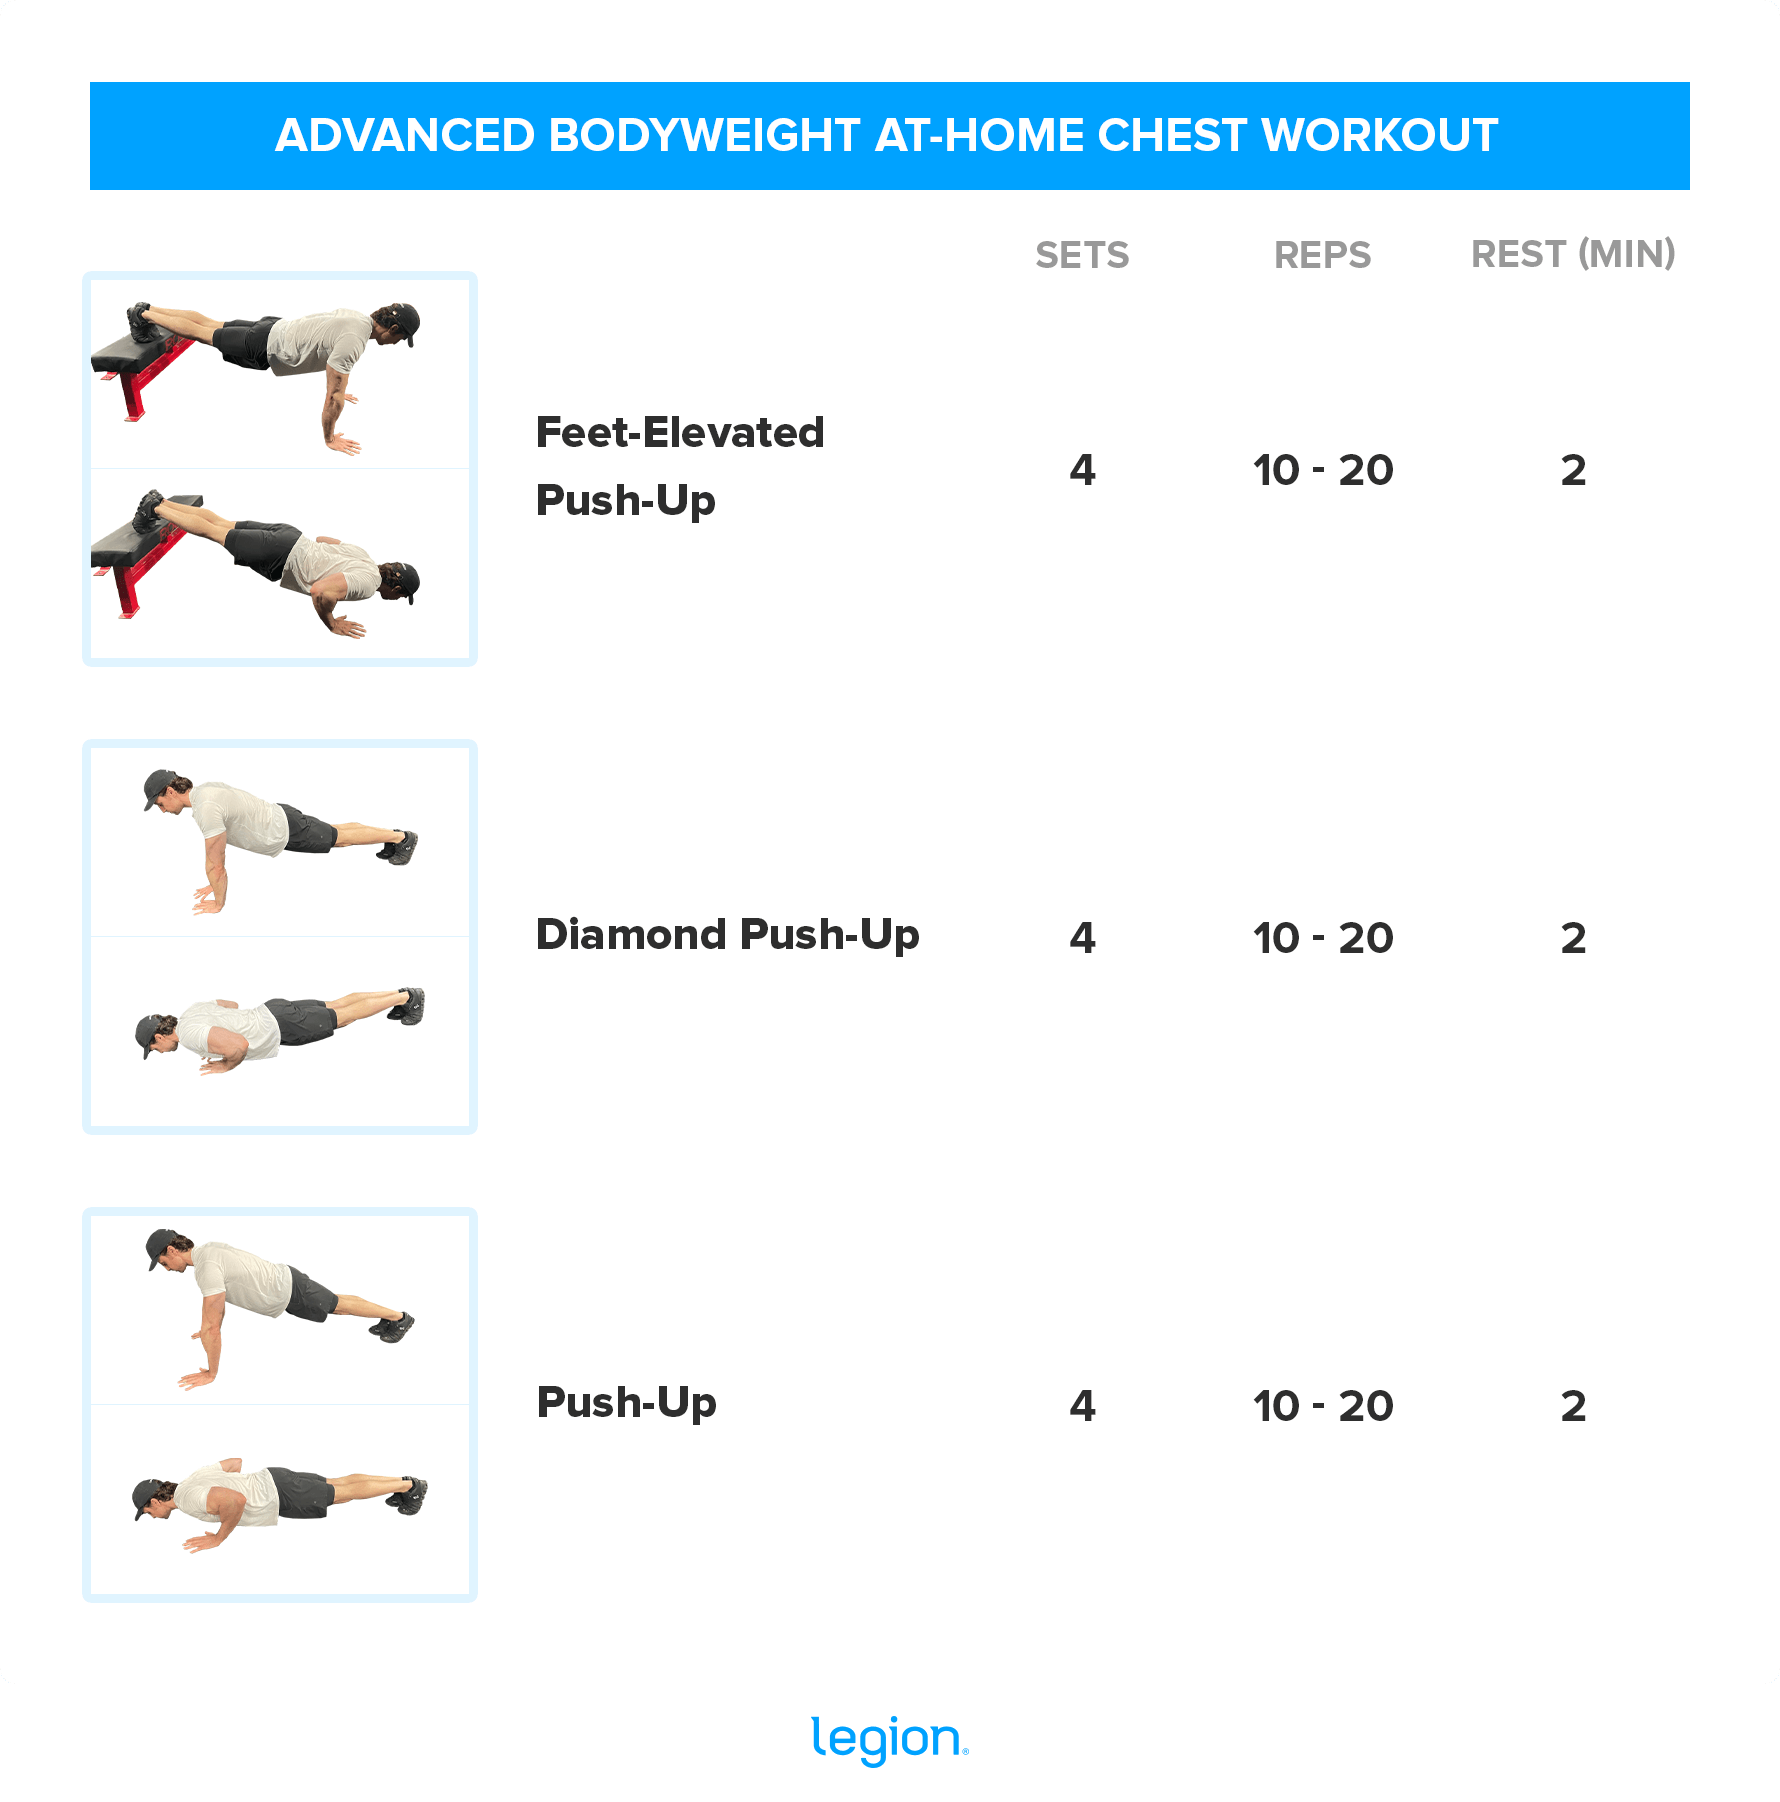 ADVANCED BODYWEIGHT AT-HOME CHEST WORKOUT